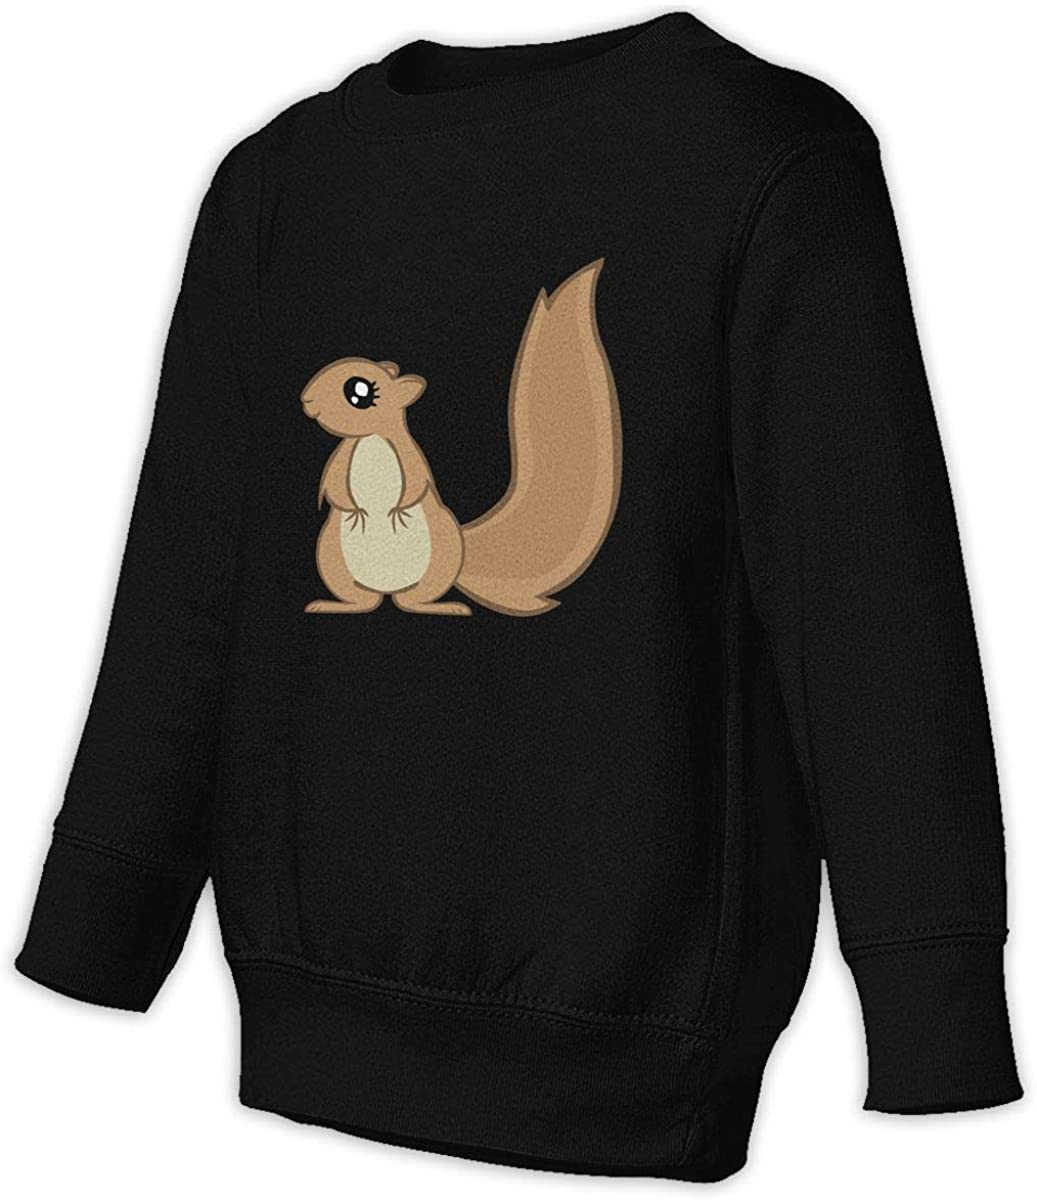 wudici Squirrels Boys Girls Pullover Sweaters Crewneck Sweatshirts Clothes for 2-6 Years Old Children